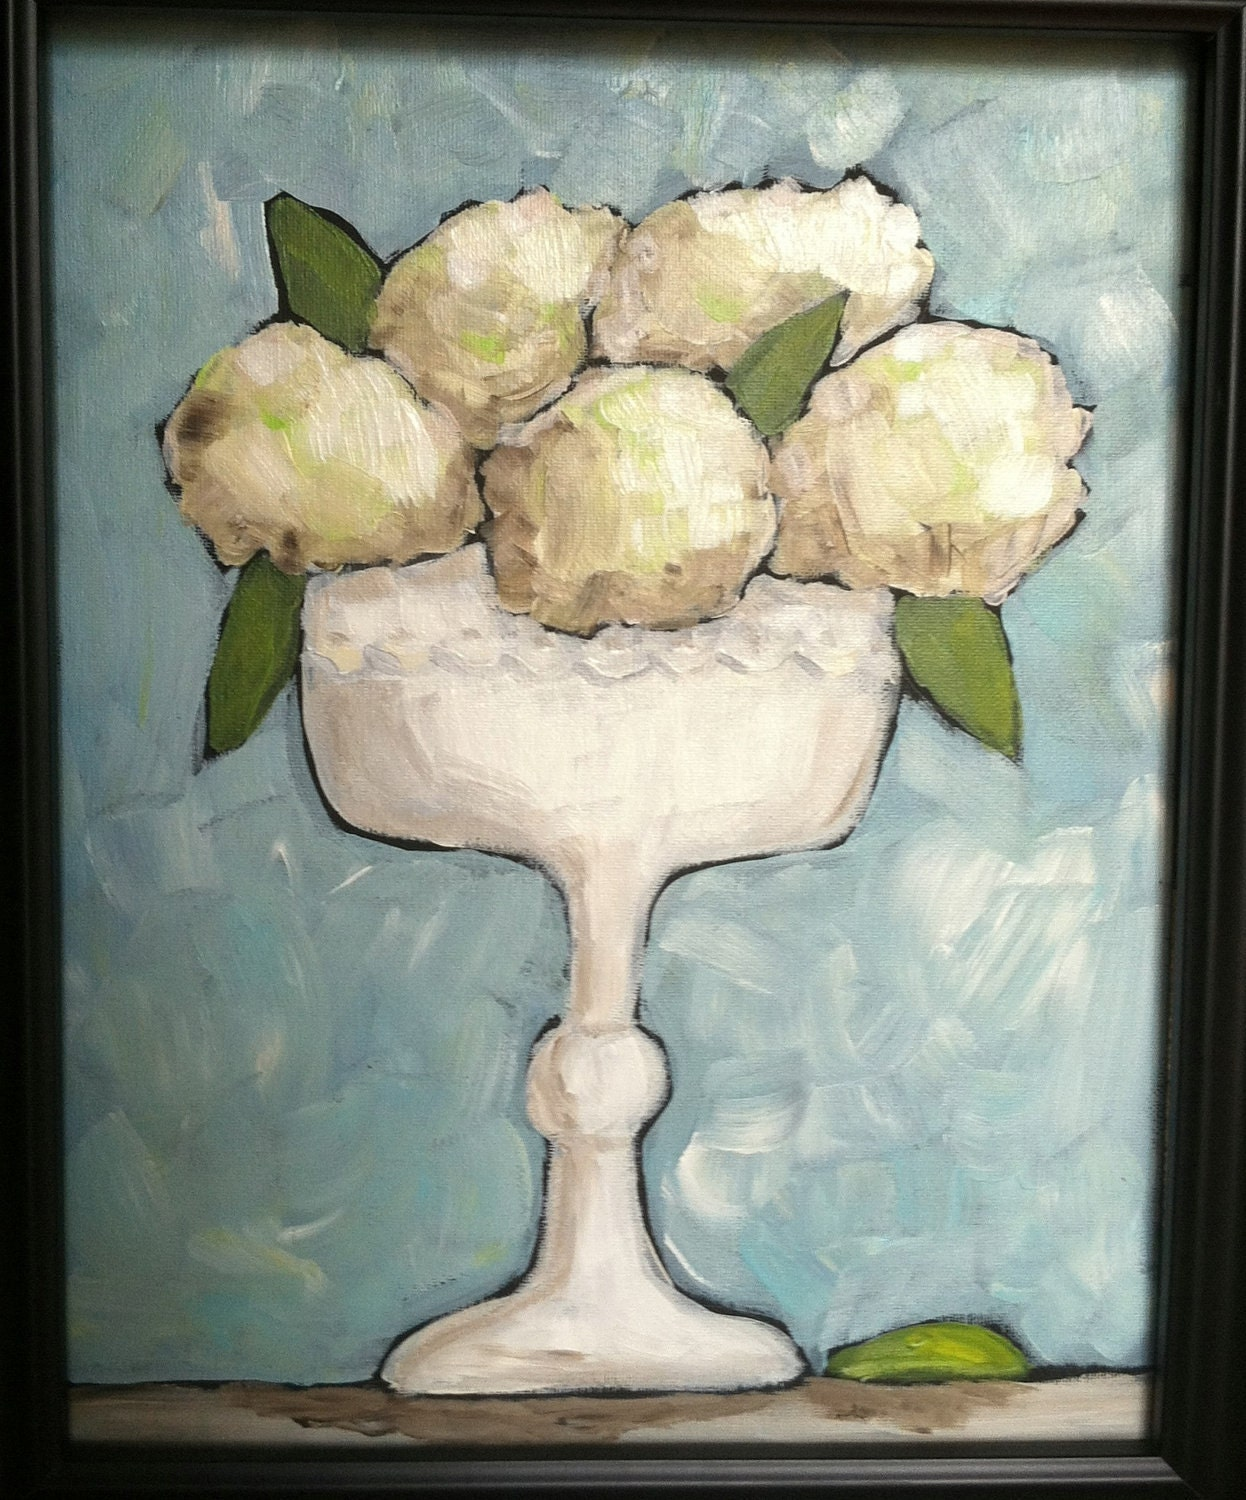 Framed Hydrangeas in a Compote